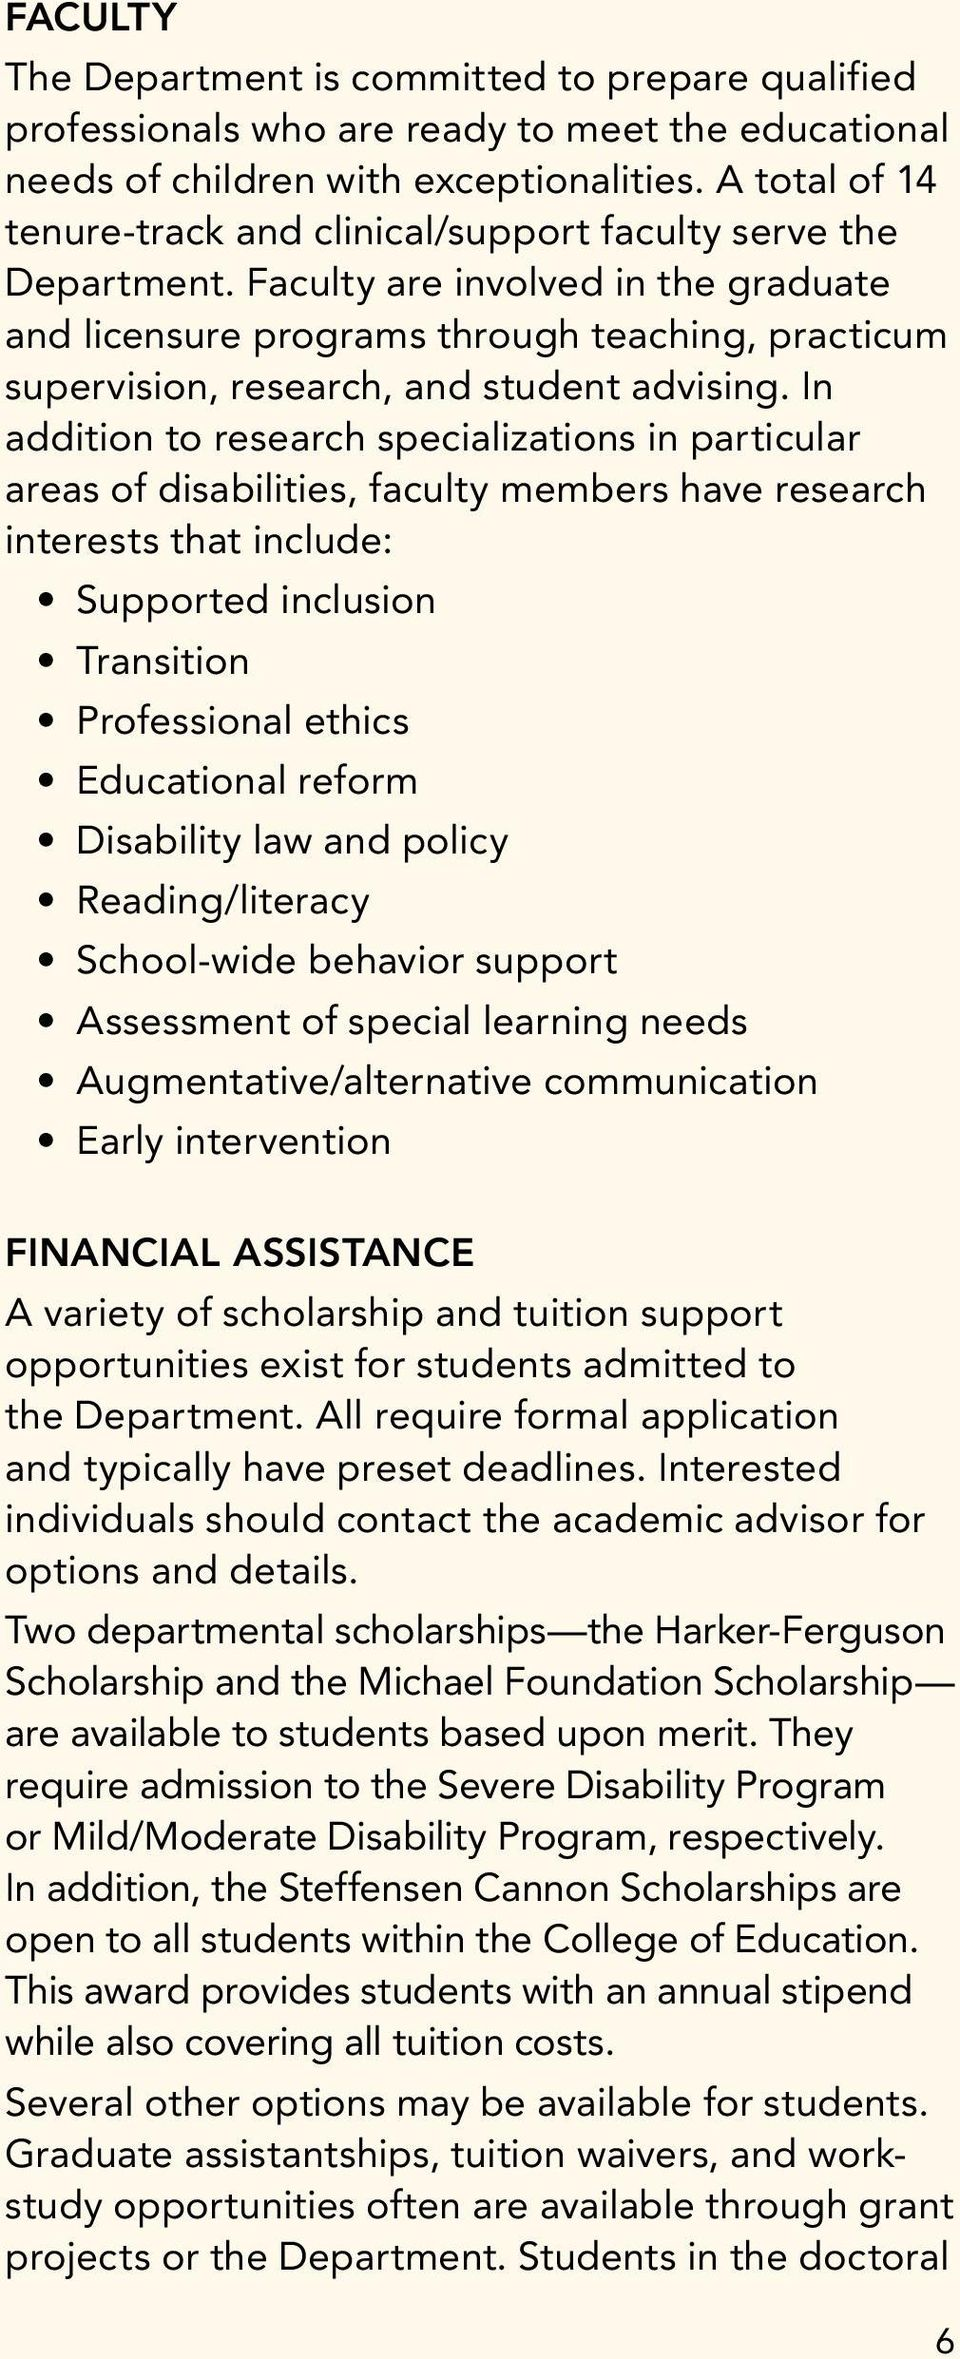 Faculty are involved in the graduate and licensure programs through teaching, practicum supervision, research, and student advising.